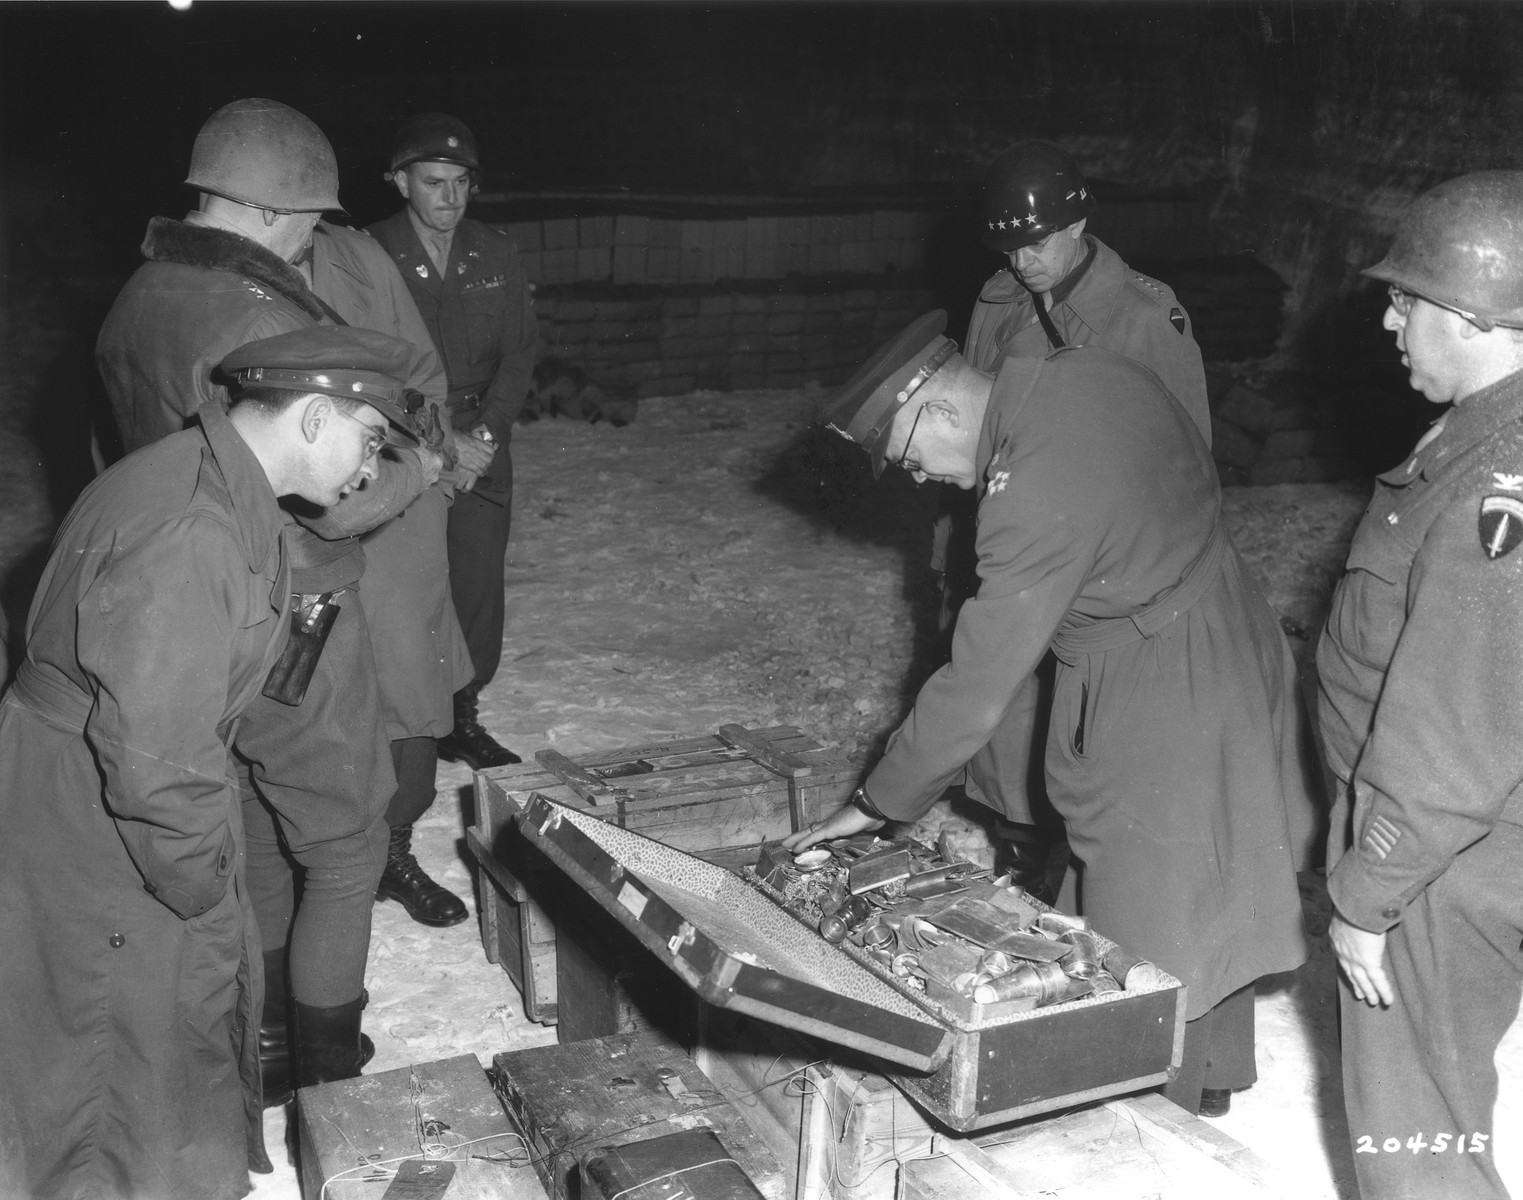 General Dwight D. Eisenhower, Supreme Allied Commander in the West, General Omar Bradley, and General George S. Patton examine a suitcase containing silverware looted by the Nazis that was hidden in the Merkers salt mine.